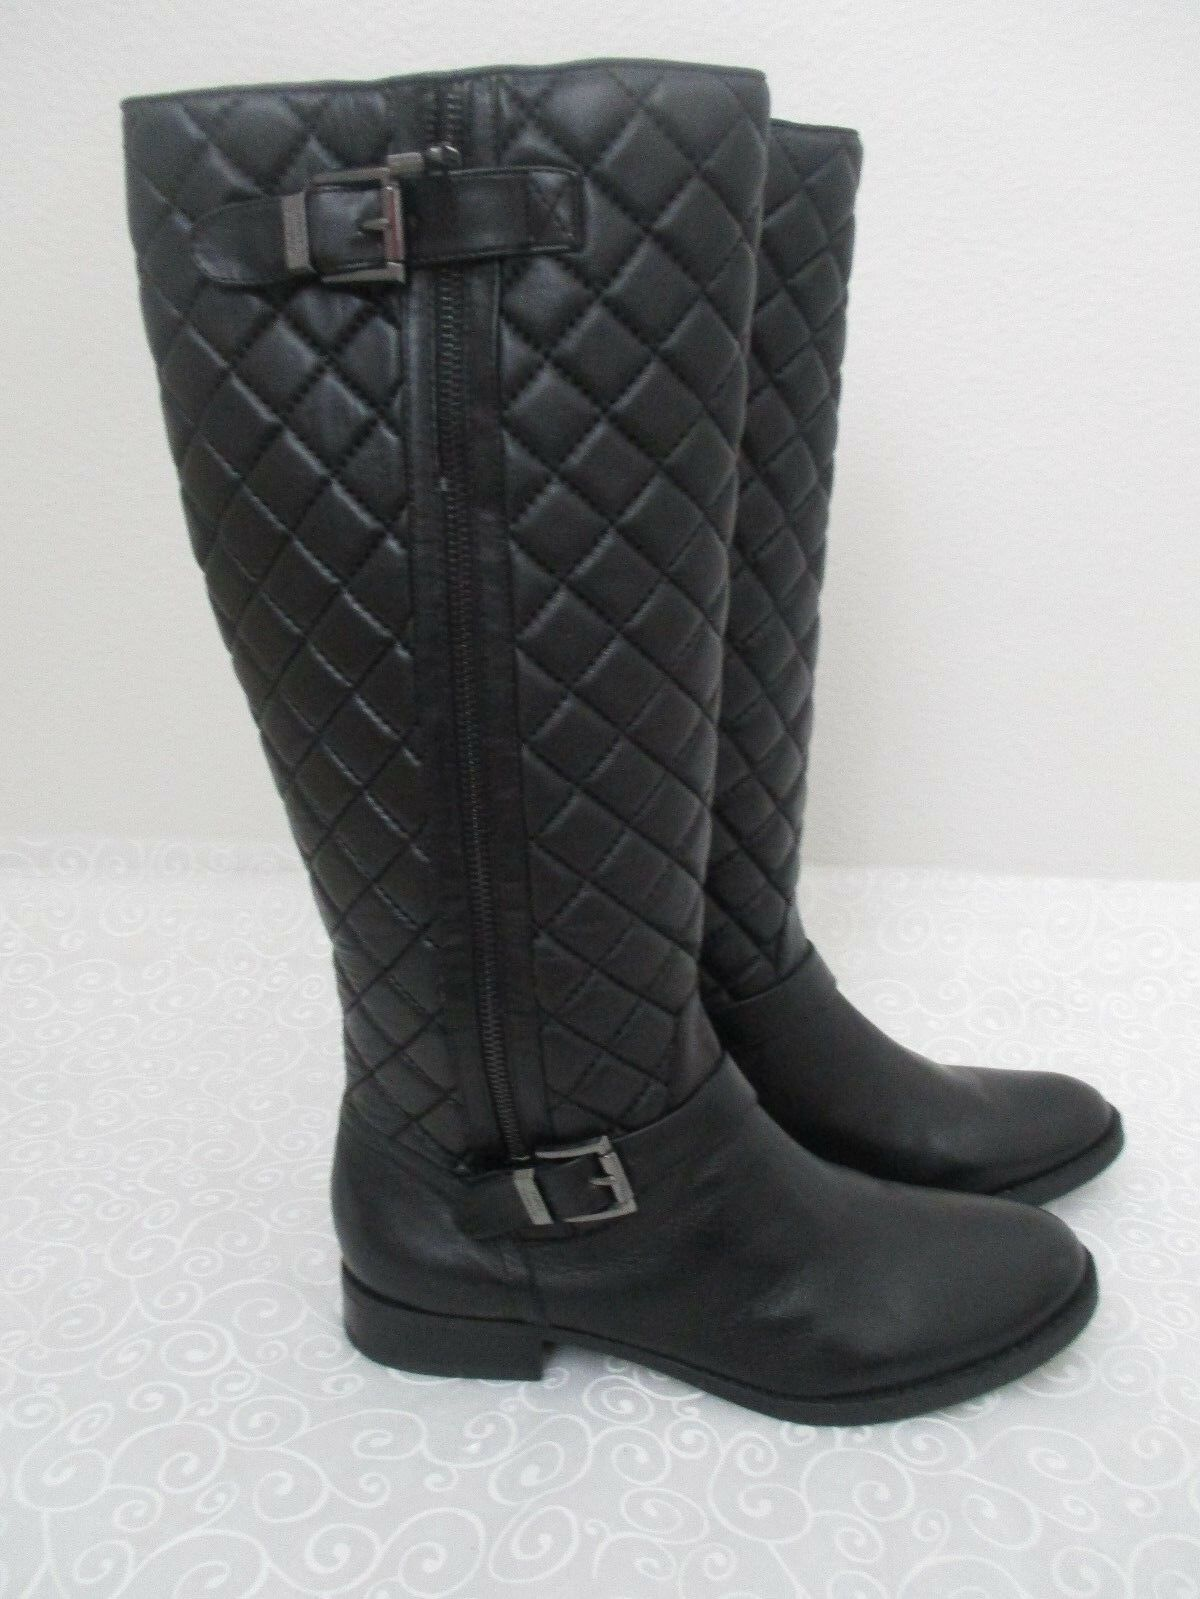 VINCE CAMUTO FREDRICK BLACK LEATHER KNEE HIGH BOOTS SIZE 9 1 2 M - NEW